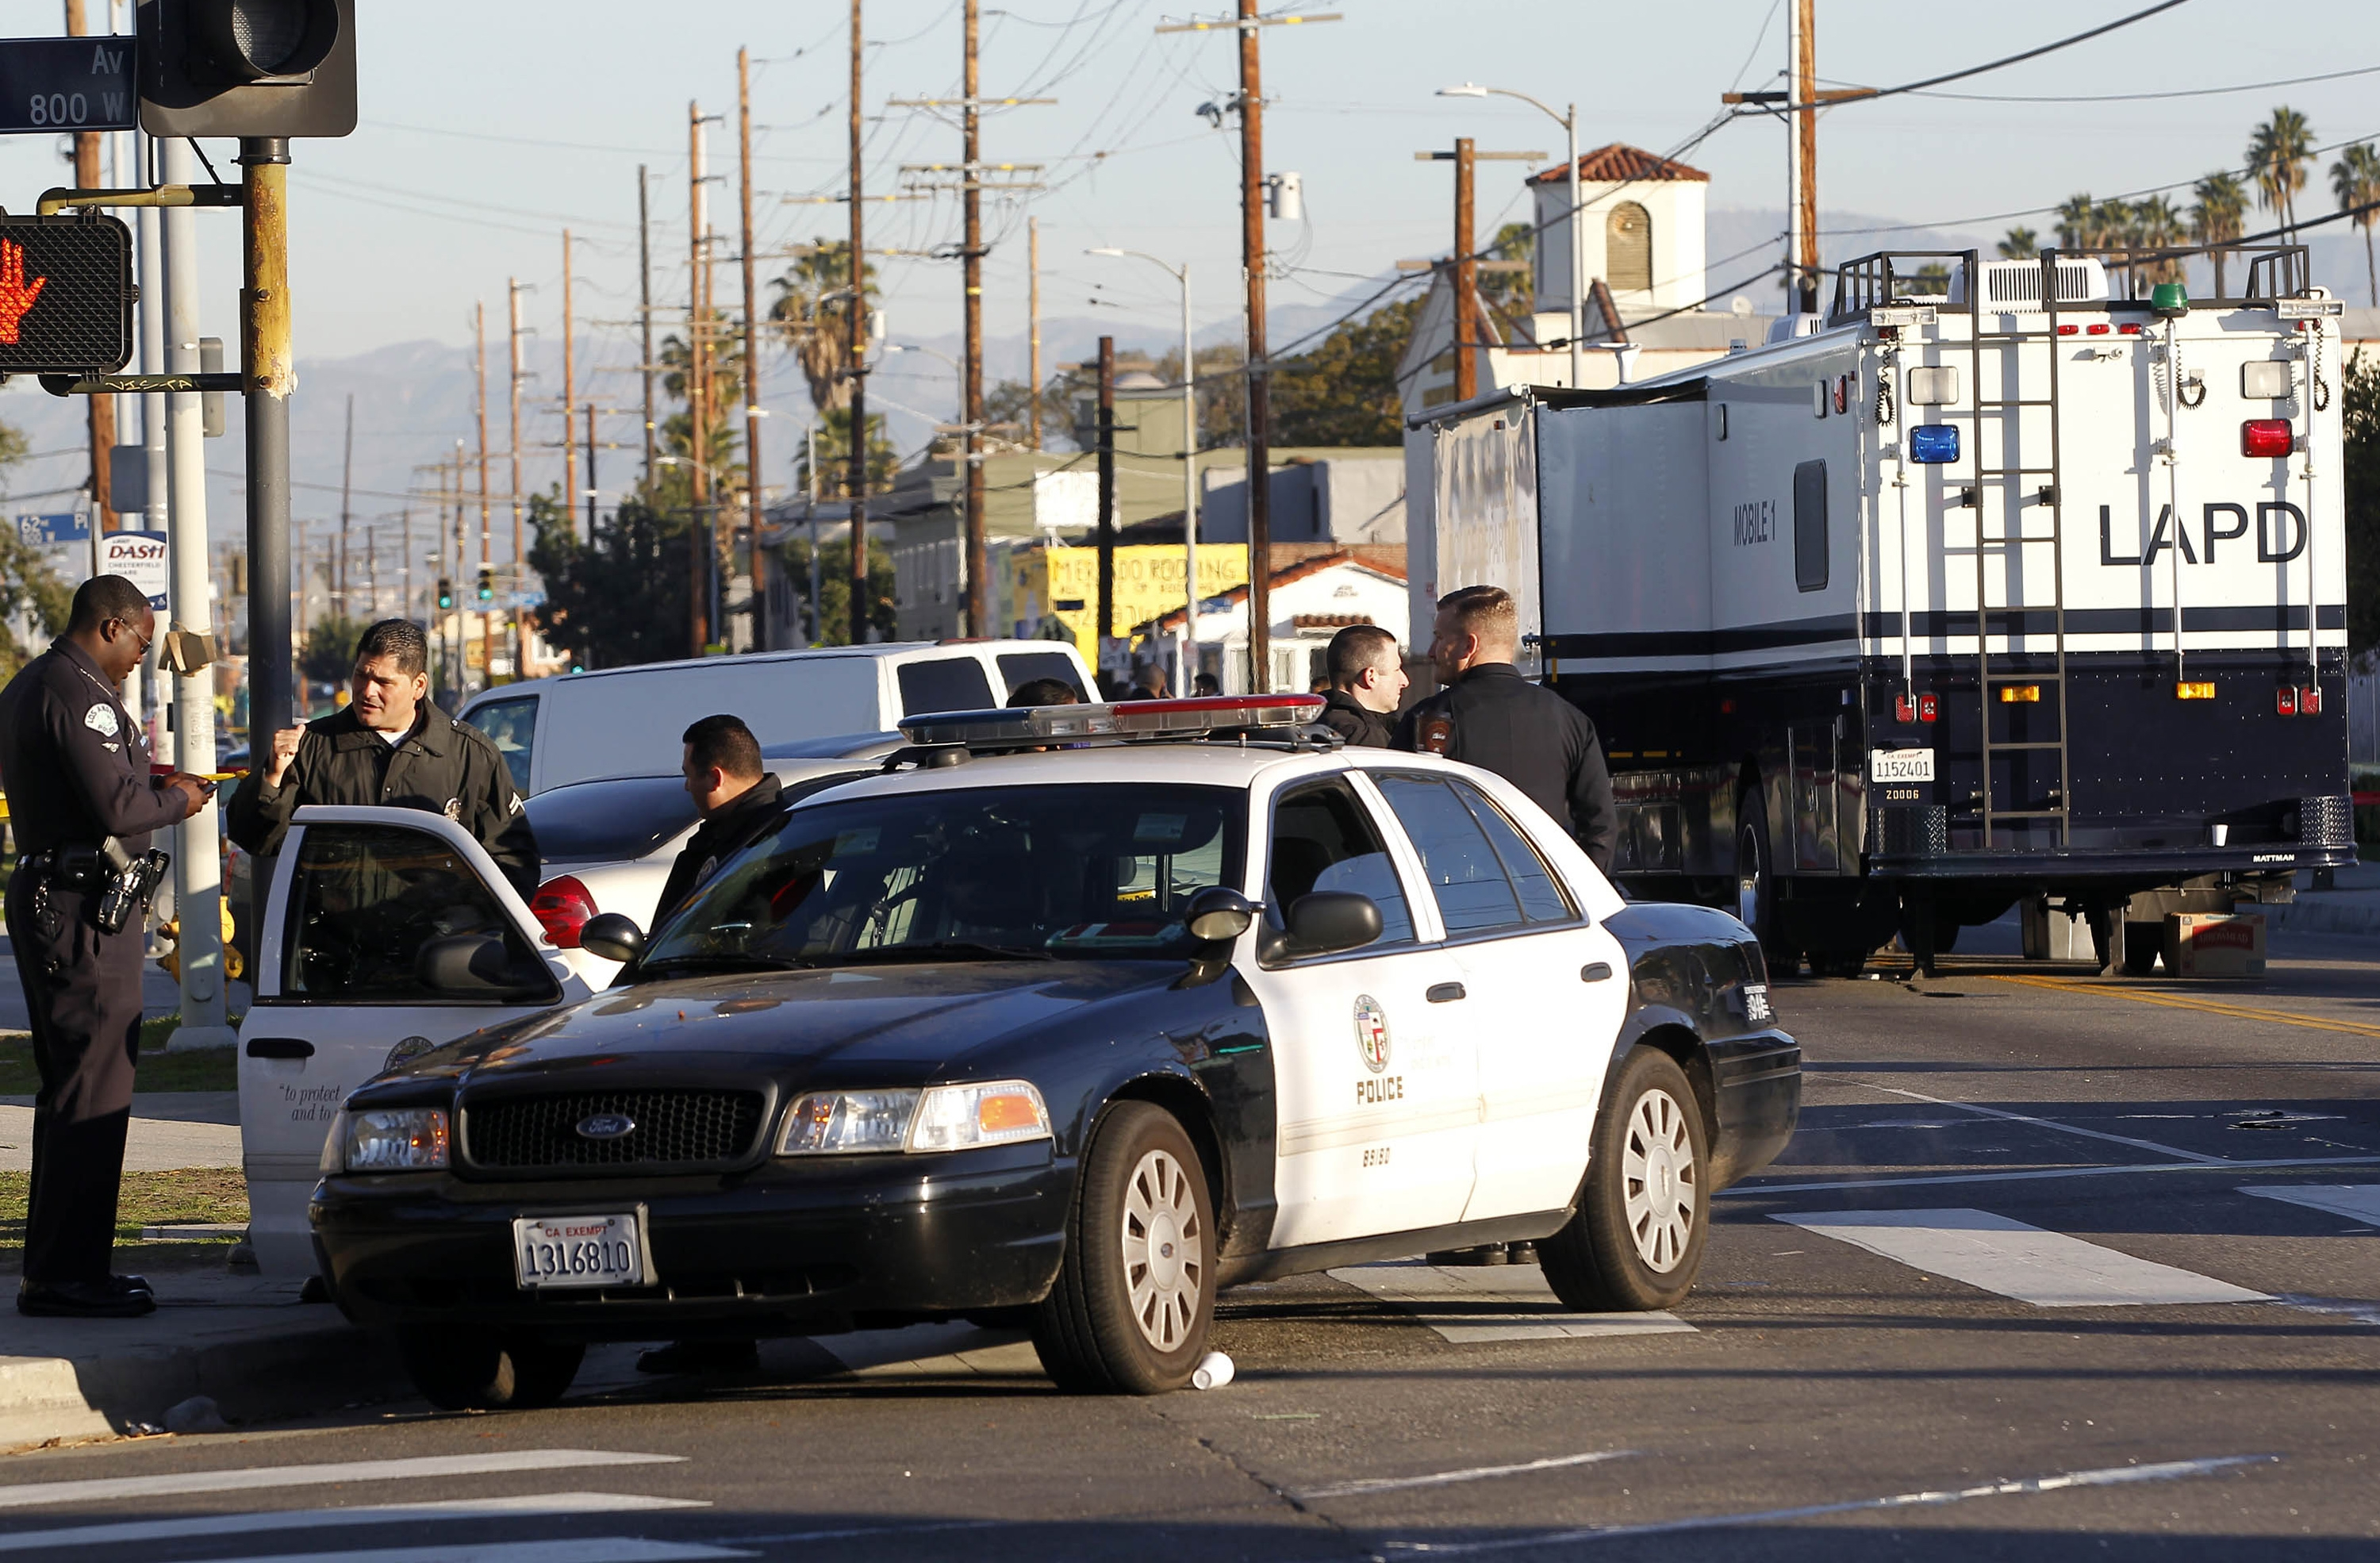 Los Angeles police officers investigate a shooting in South Central Los Angles on Monday. A man fired a rifle at two Los Angeles officers in a patrol car on Sunday night but no one was injured in the attack that comes amid tension nationwide between police and protesters rallying against their tactics.